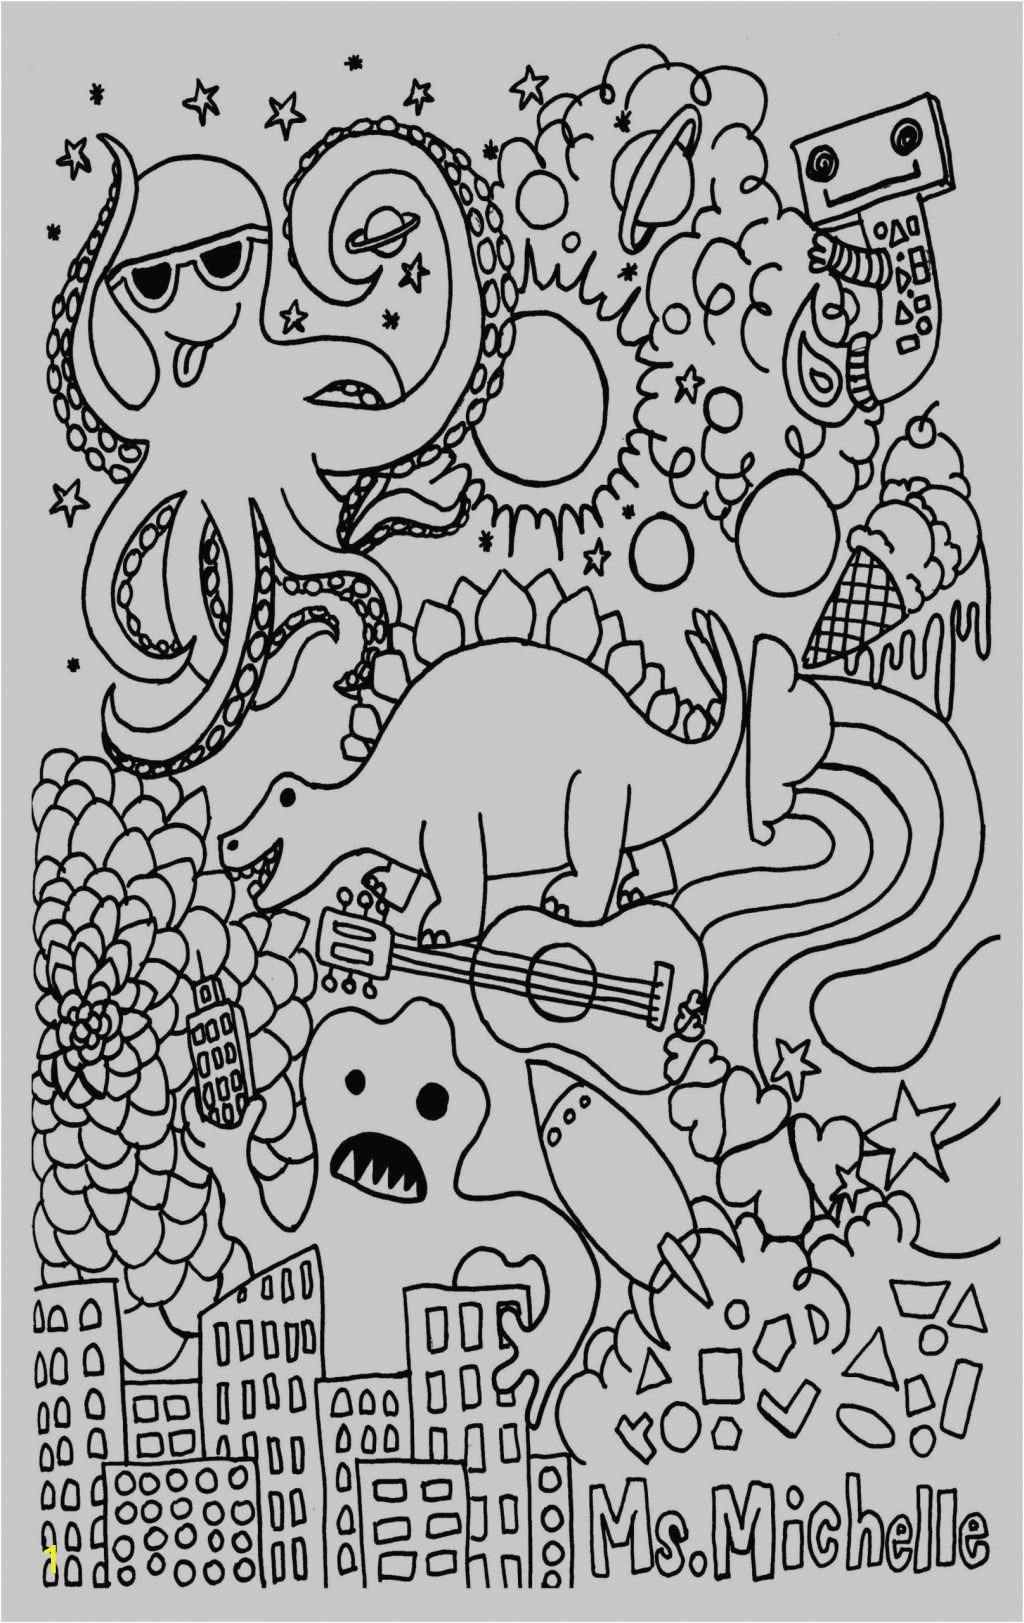 childrens printable coloring pages stress relief for adults fox preschoolers cute anime girl colouring heaven books therapeutic house giant christmas stranger things book colorama all 1024x1623